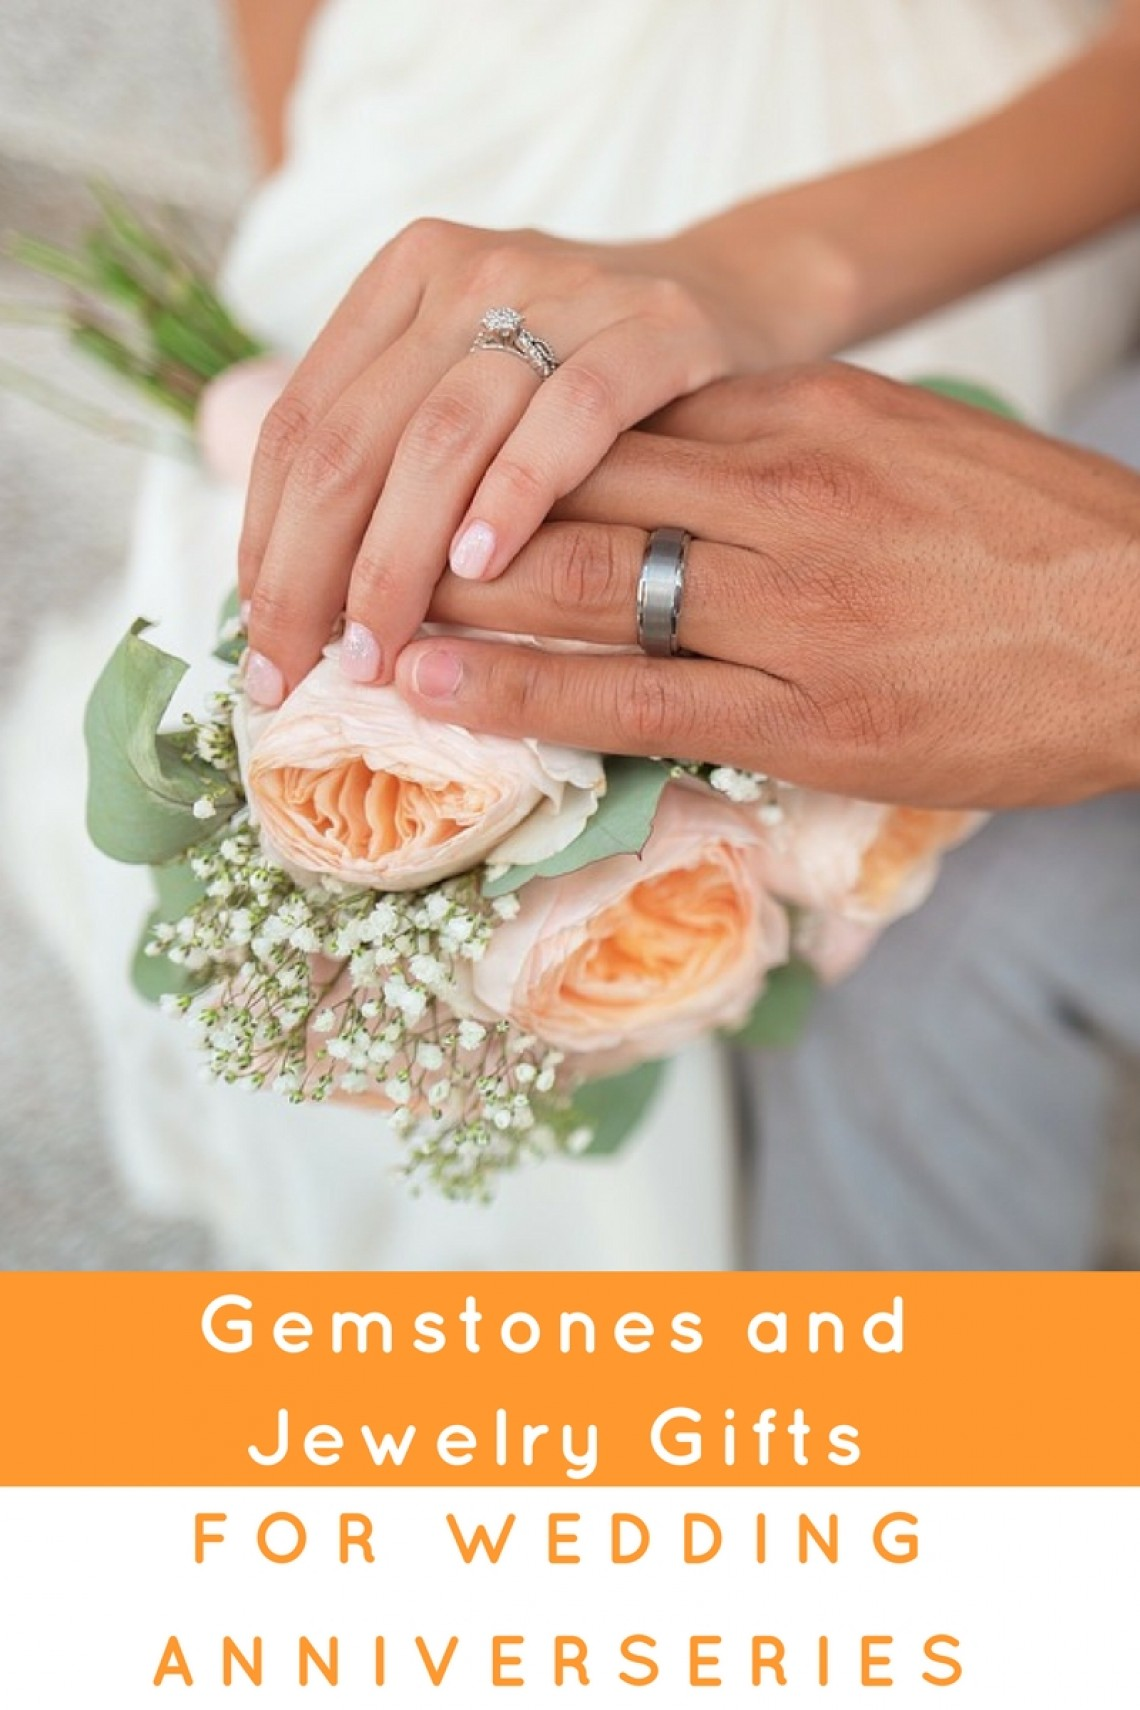 Wedding anniversaries gemstones and jewelry by year gem rock wedding anniversaries gemstones and jewelry gifts by year biocorpaavc Gallery